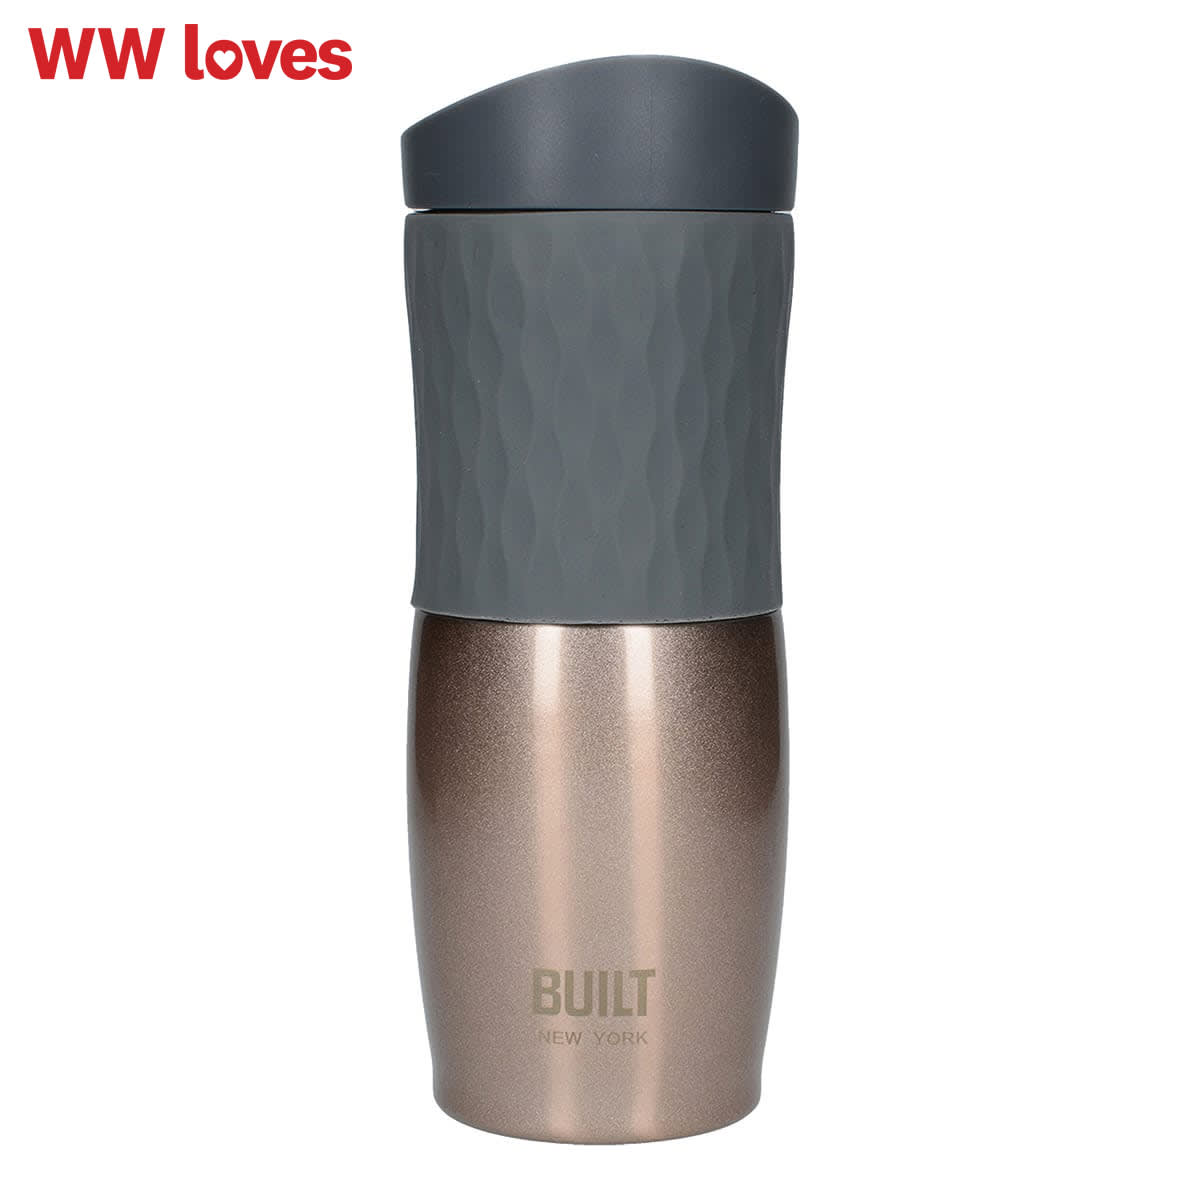 Built 470ml Double Walled Tilt Travel Mug, colour midnight blue and black, vacuum-insulated body, BPA Free, stays cold for up to 24 hours and hot for up to 8 hours